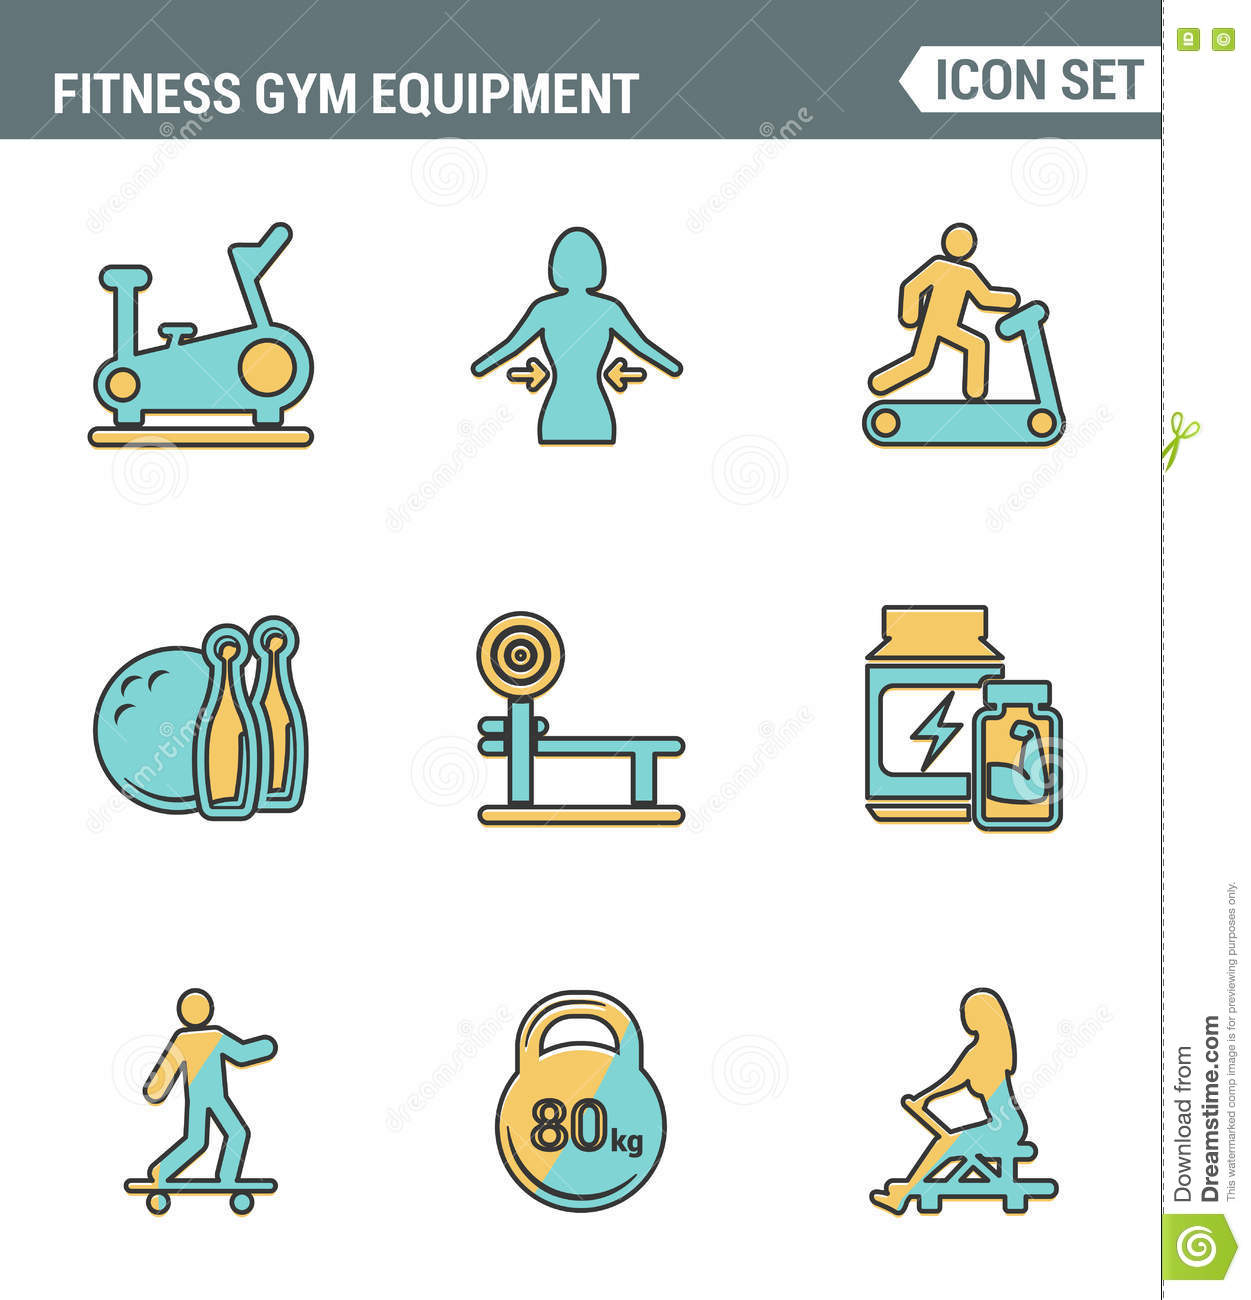 Icons line set premium quality of fitness gym equipment, sports recreation activity. Modern pictogram collection flat design